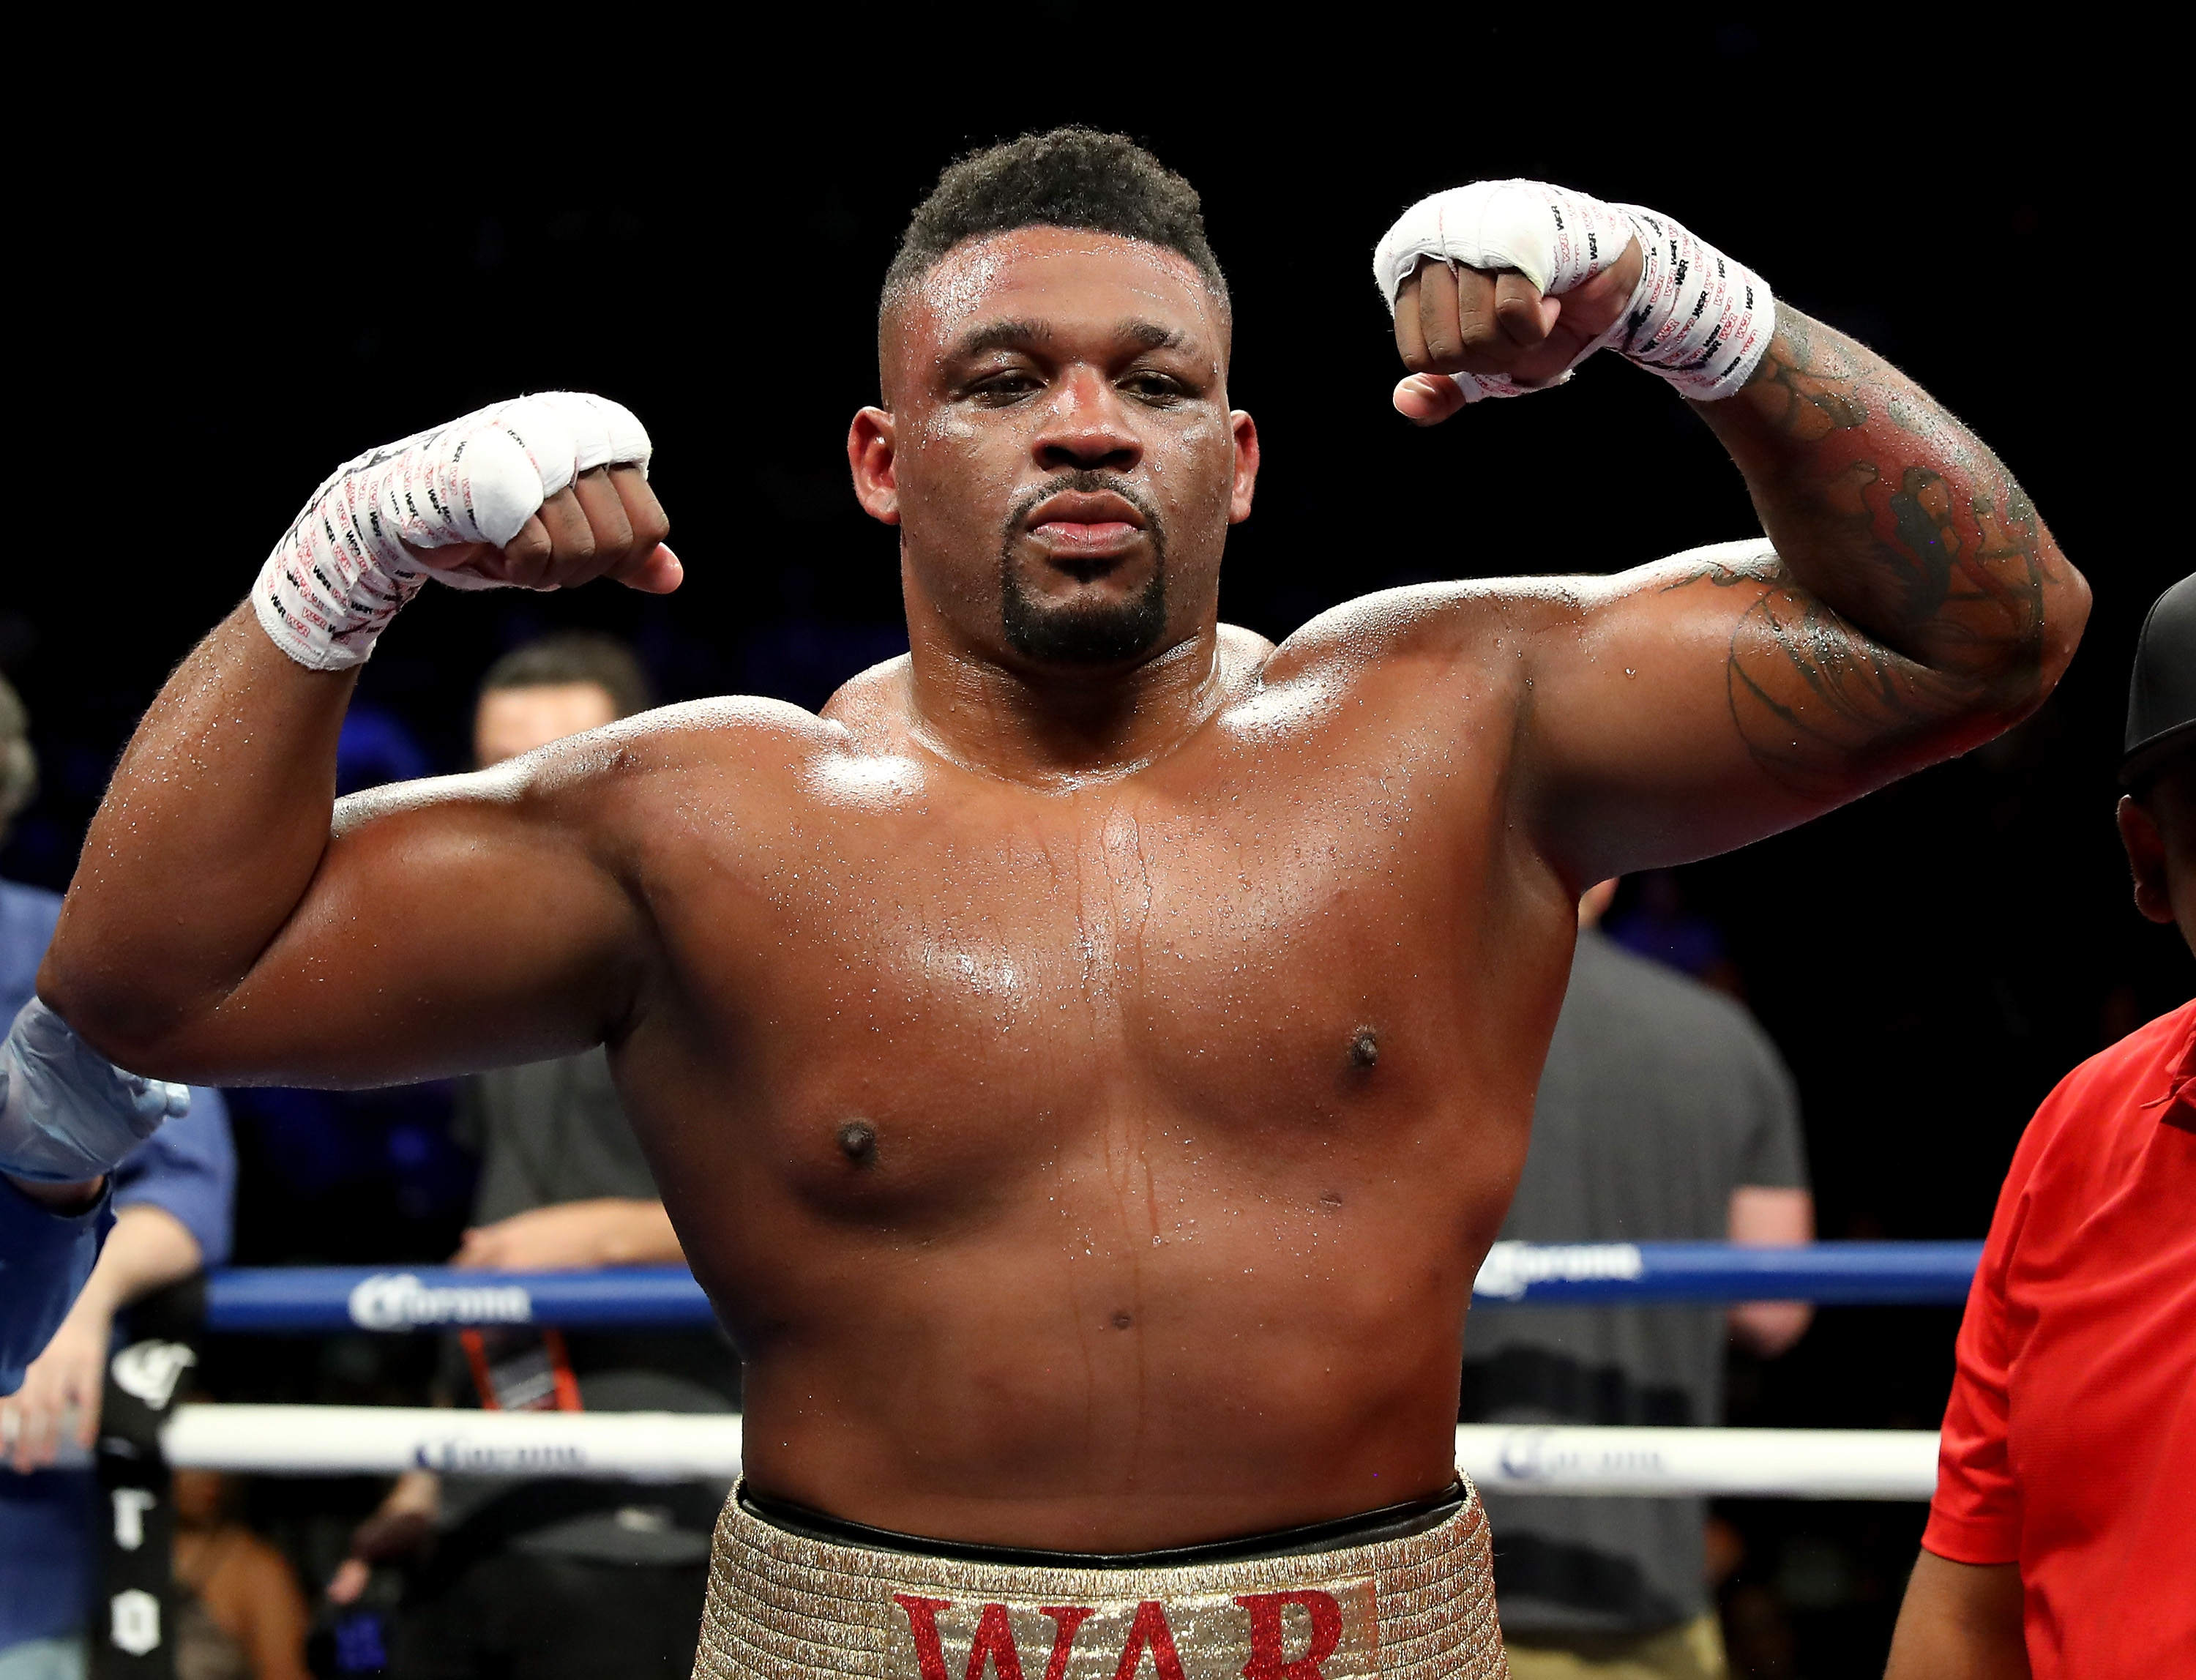 Jarrell Miller will be a huge, literally, underdog when he fights Anthony Joshua on June 1